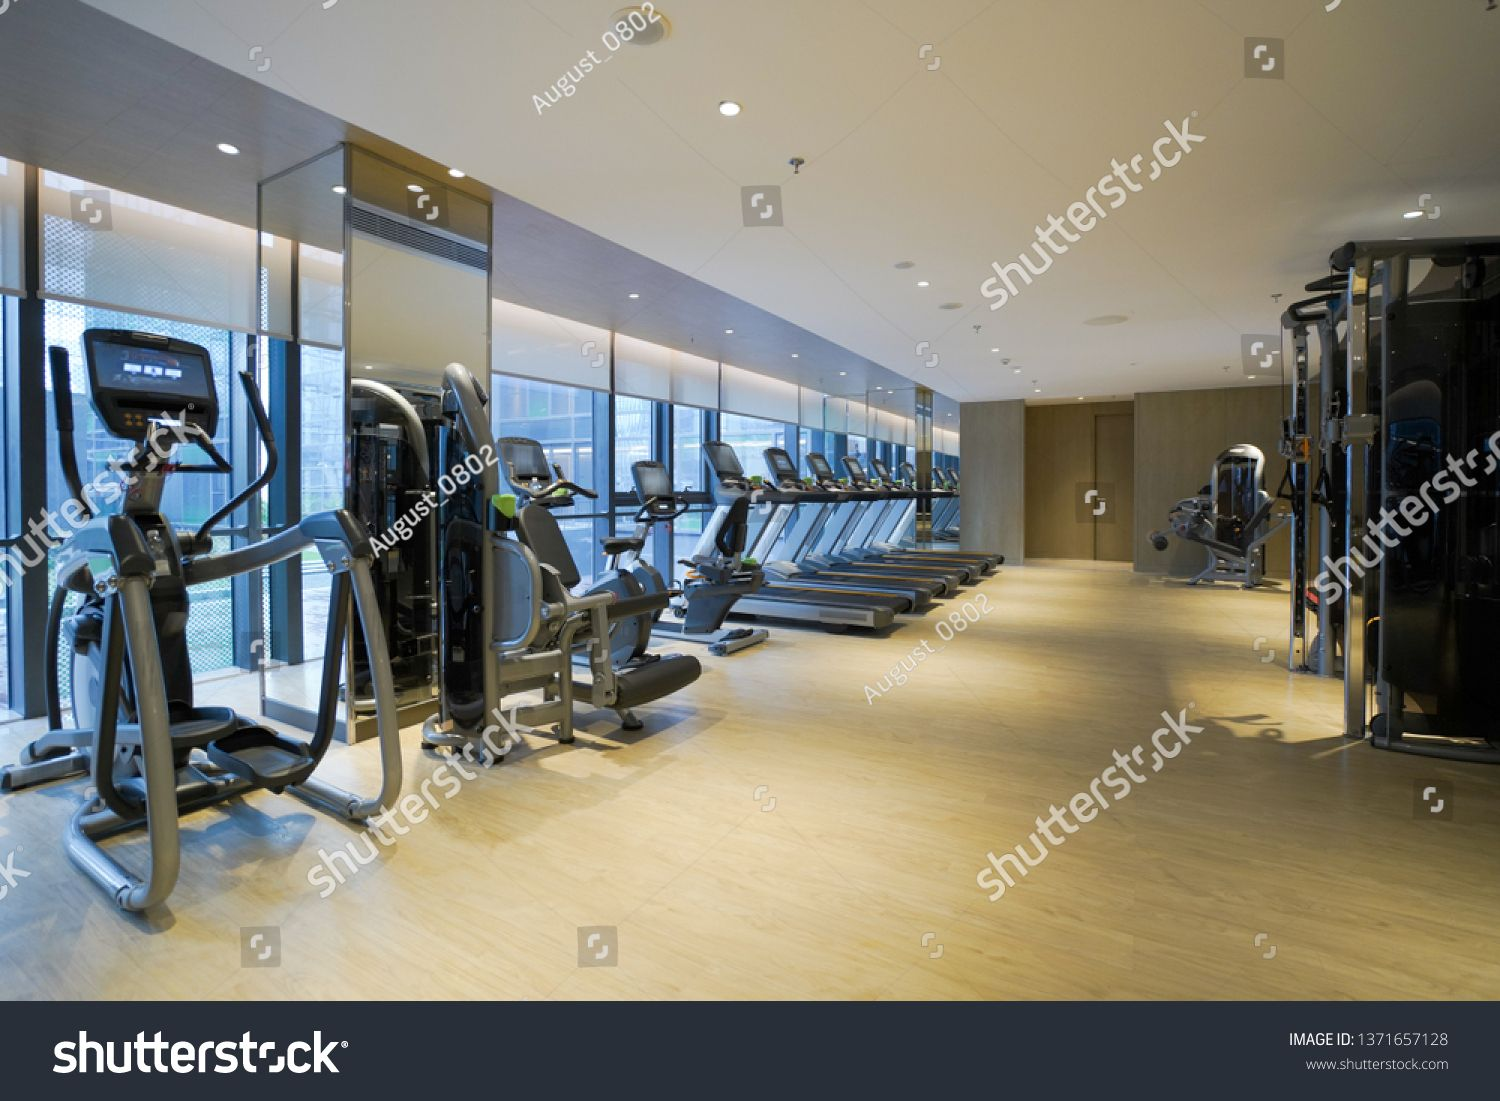 Modern Light Gym Sports Equipment In Gym Barbells Of Different Weight On Rack Ad Ad Gym Sports Modern Light With Images Modern Lighting Sports Equipment Gym